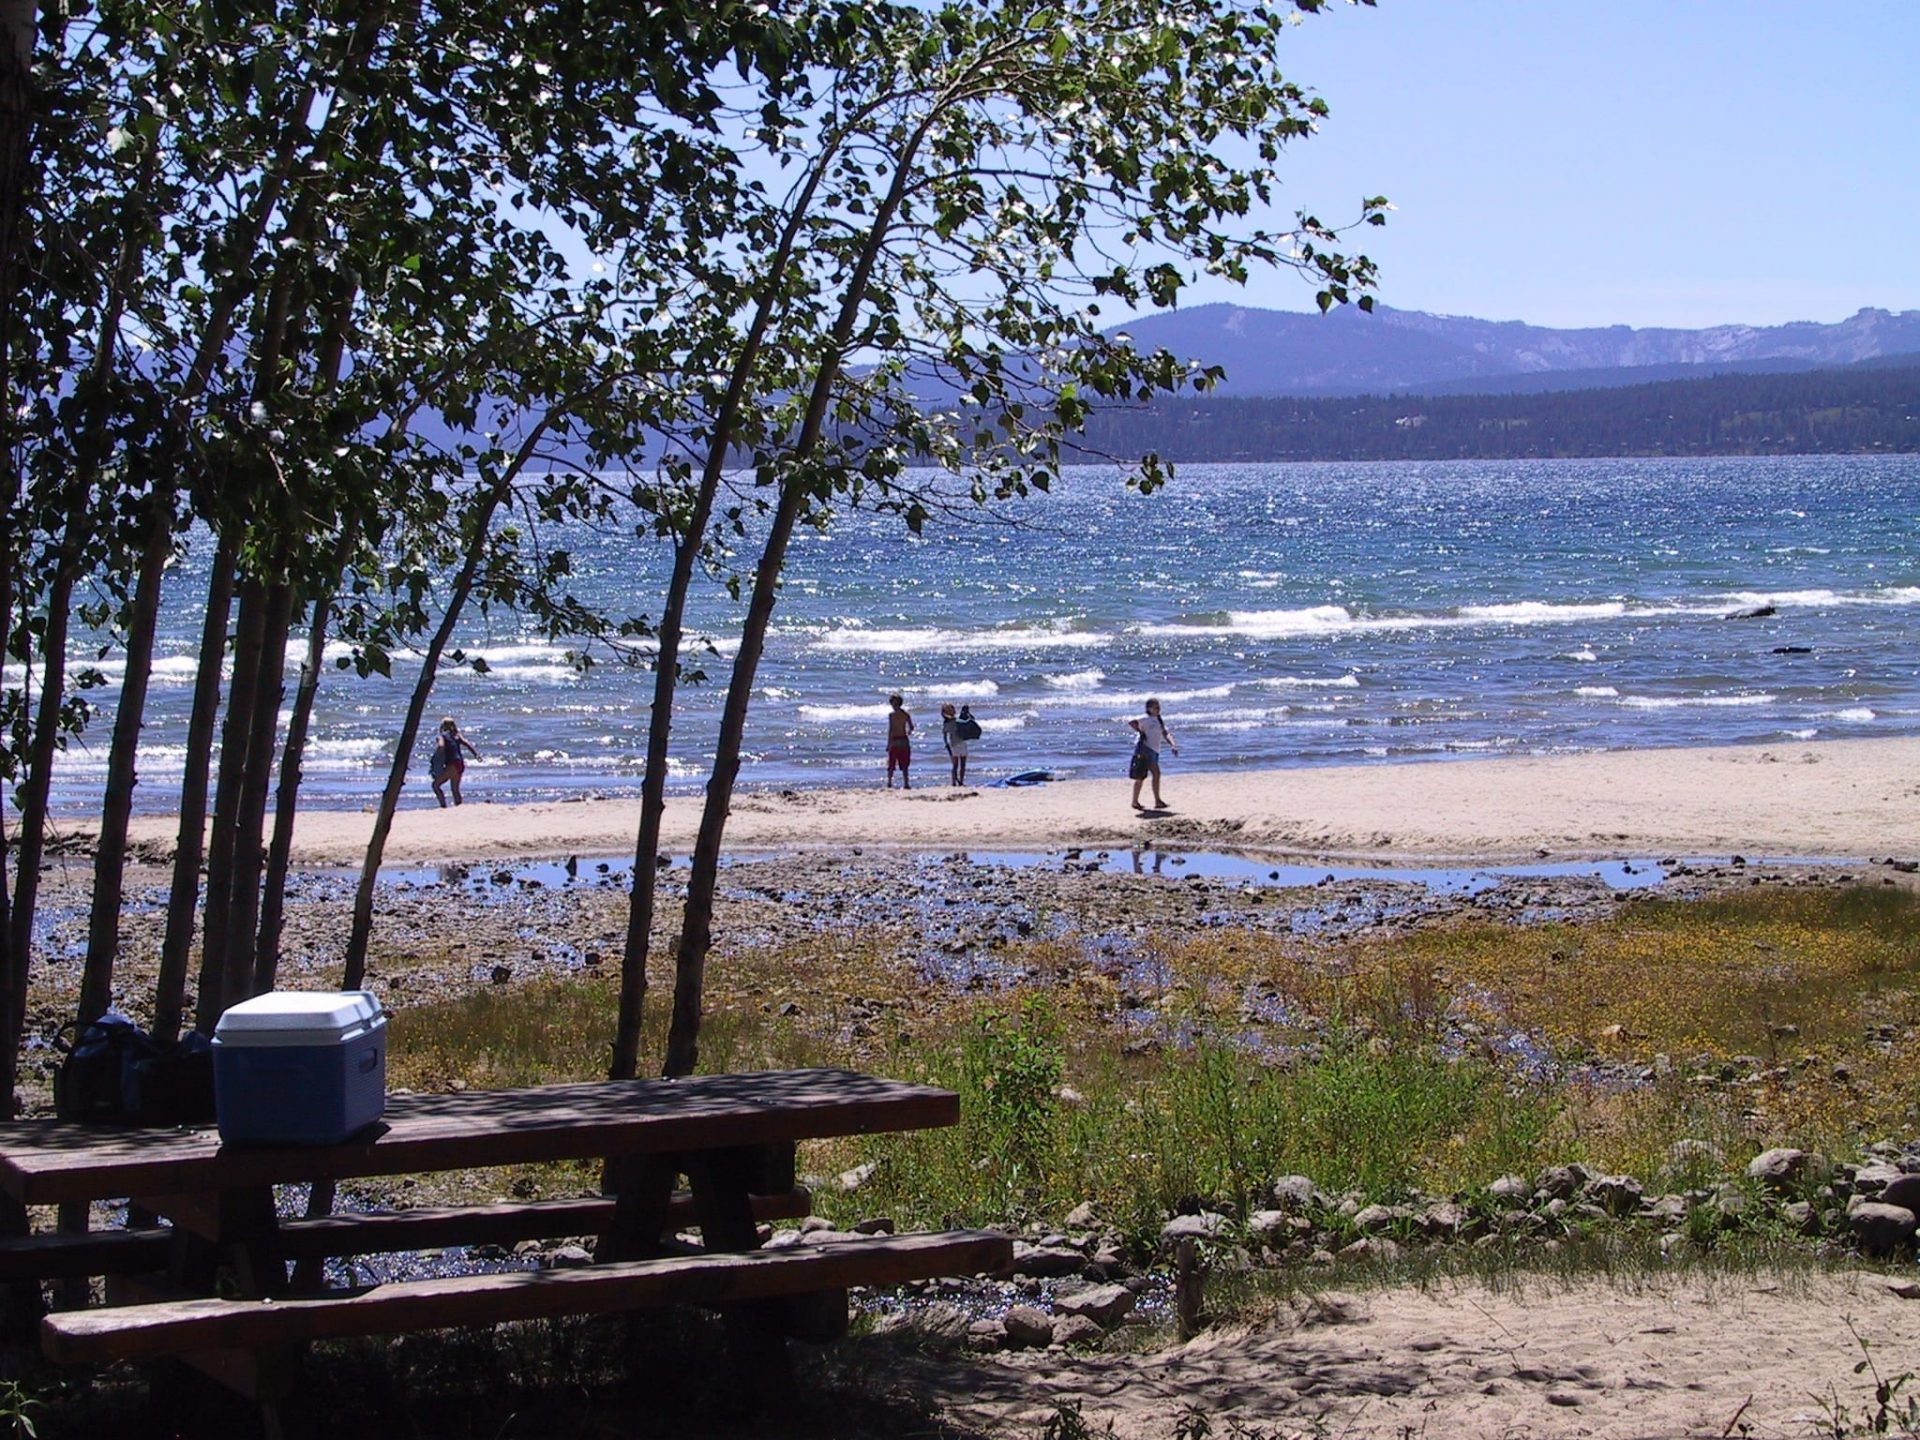 tahoe vista chat sites Take a glamping getaway in tahoe vista, california today for a trip of a lifetime.